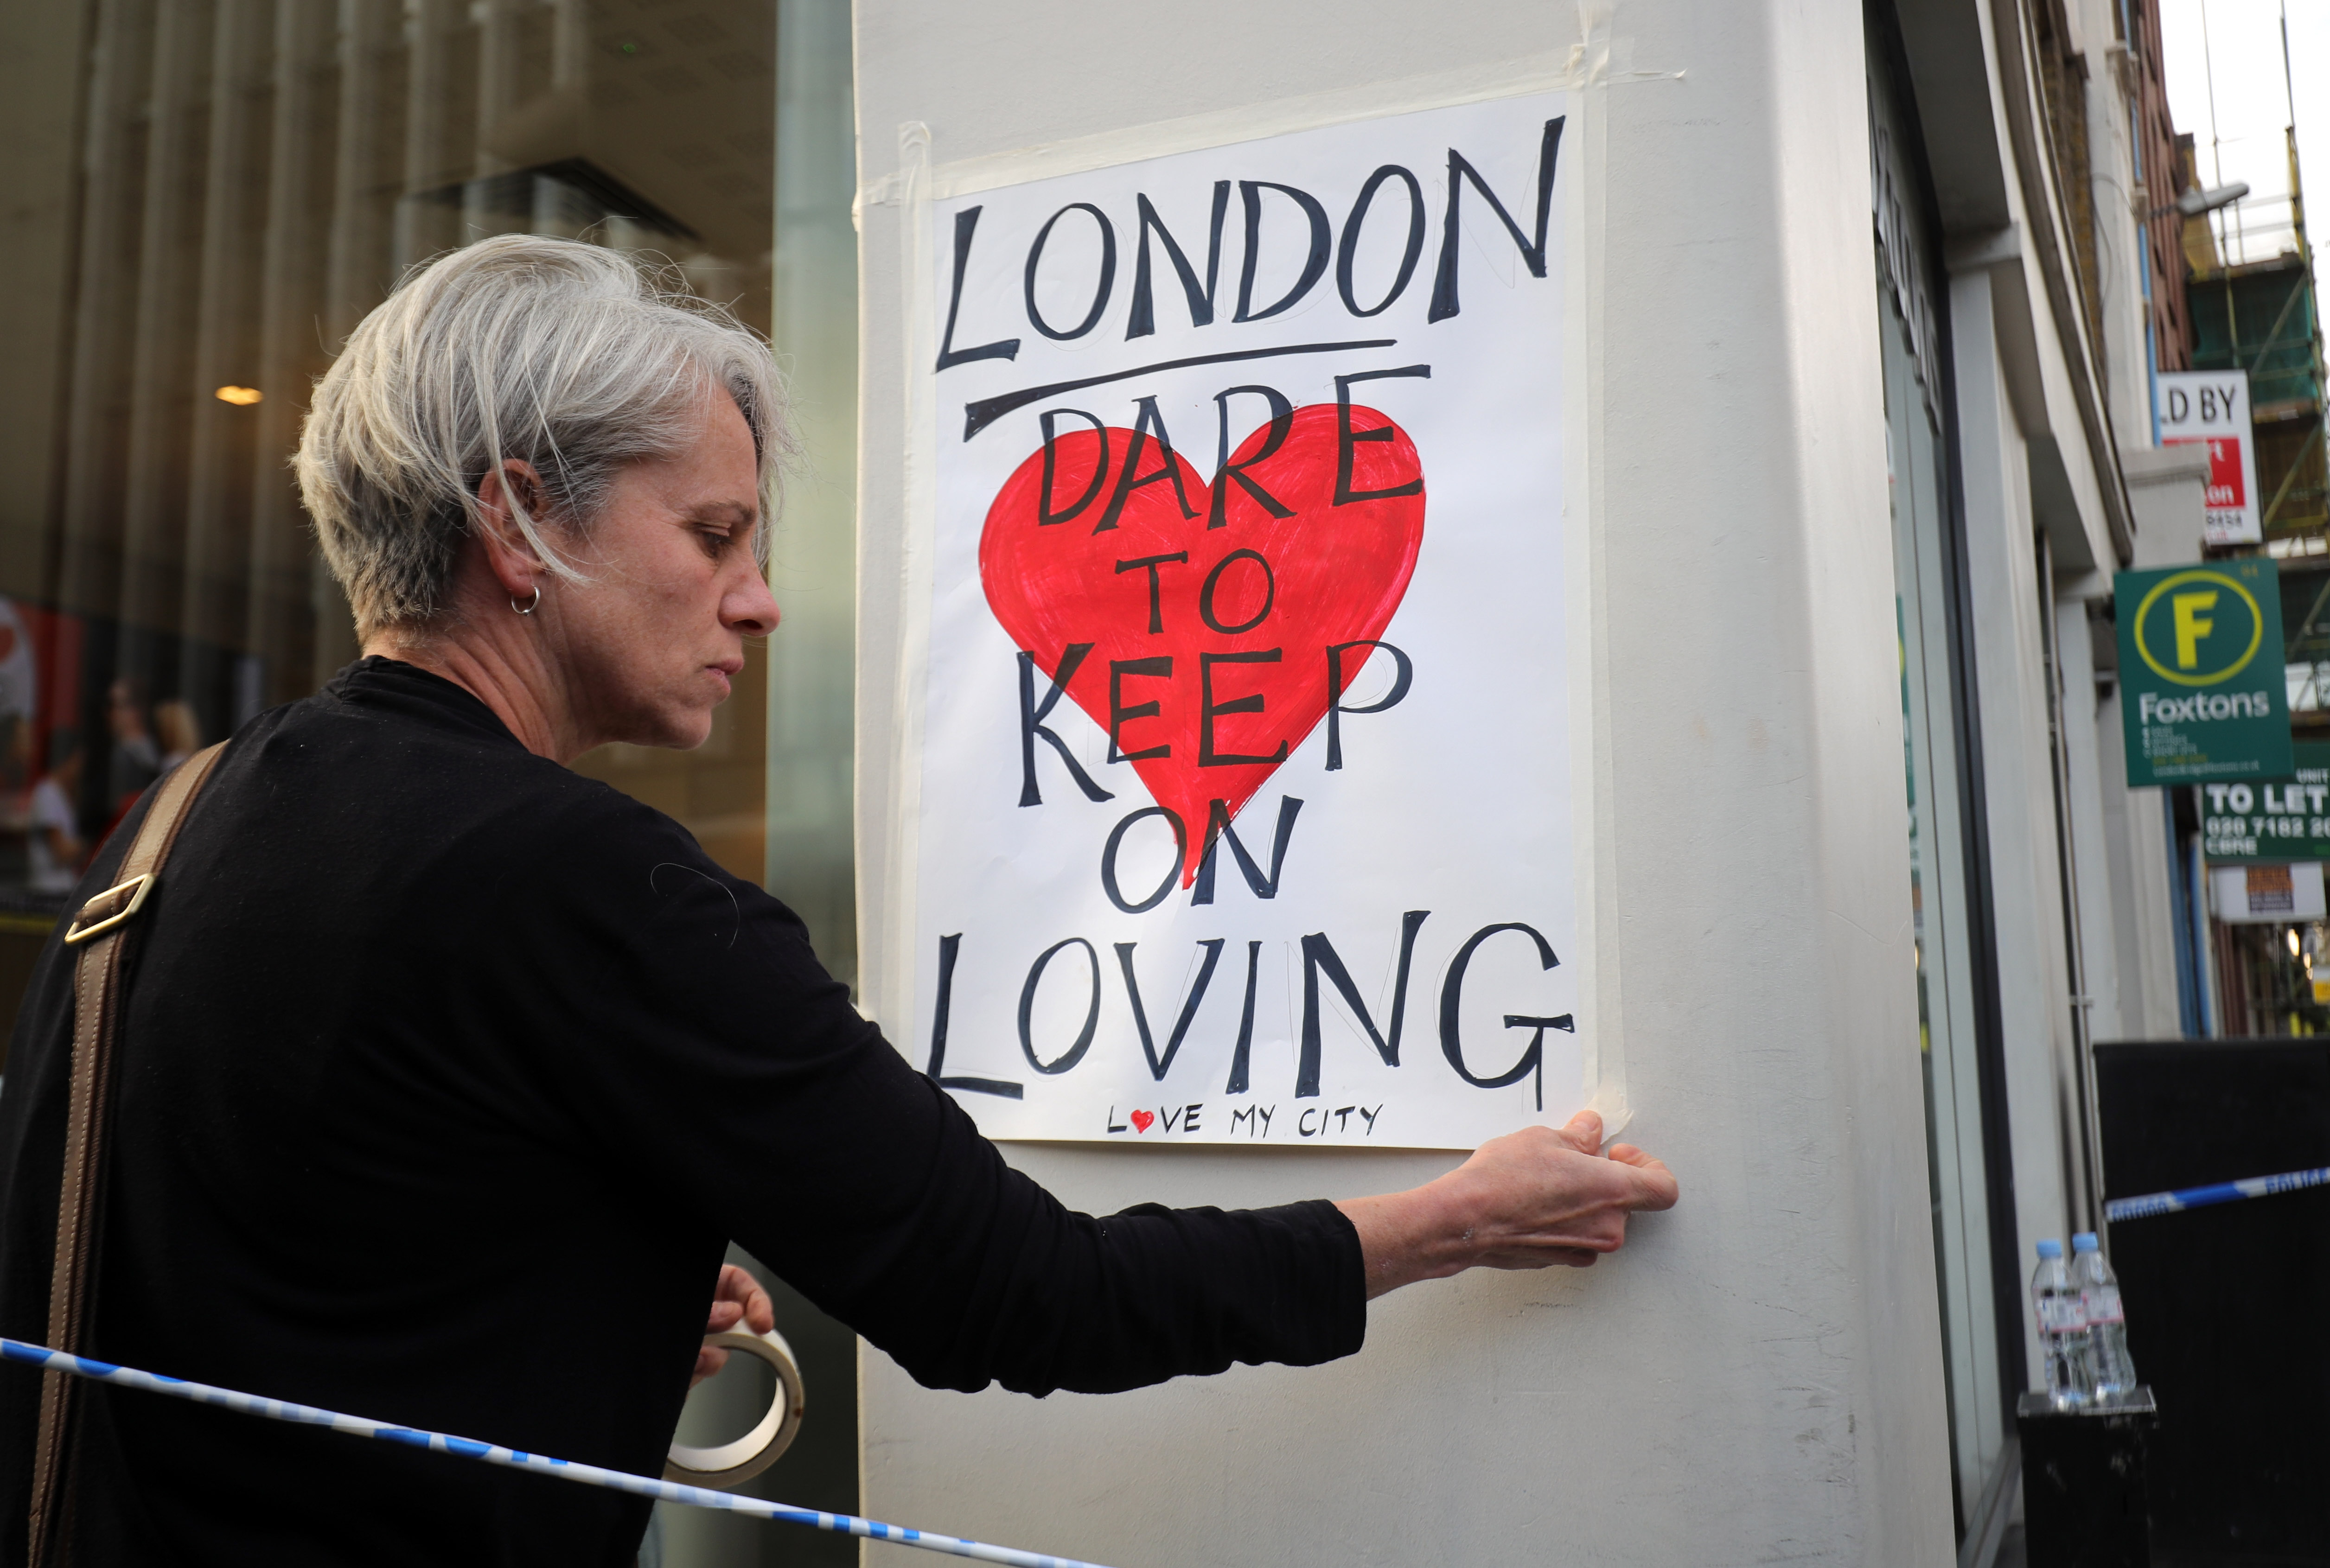 A woman places posters around the city near the scene of Saturday night's terrorist attack on June 4, 2017 in London, England.